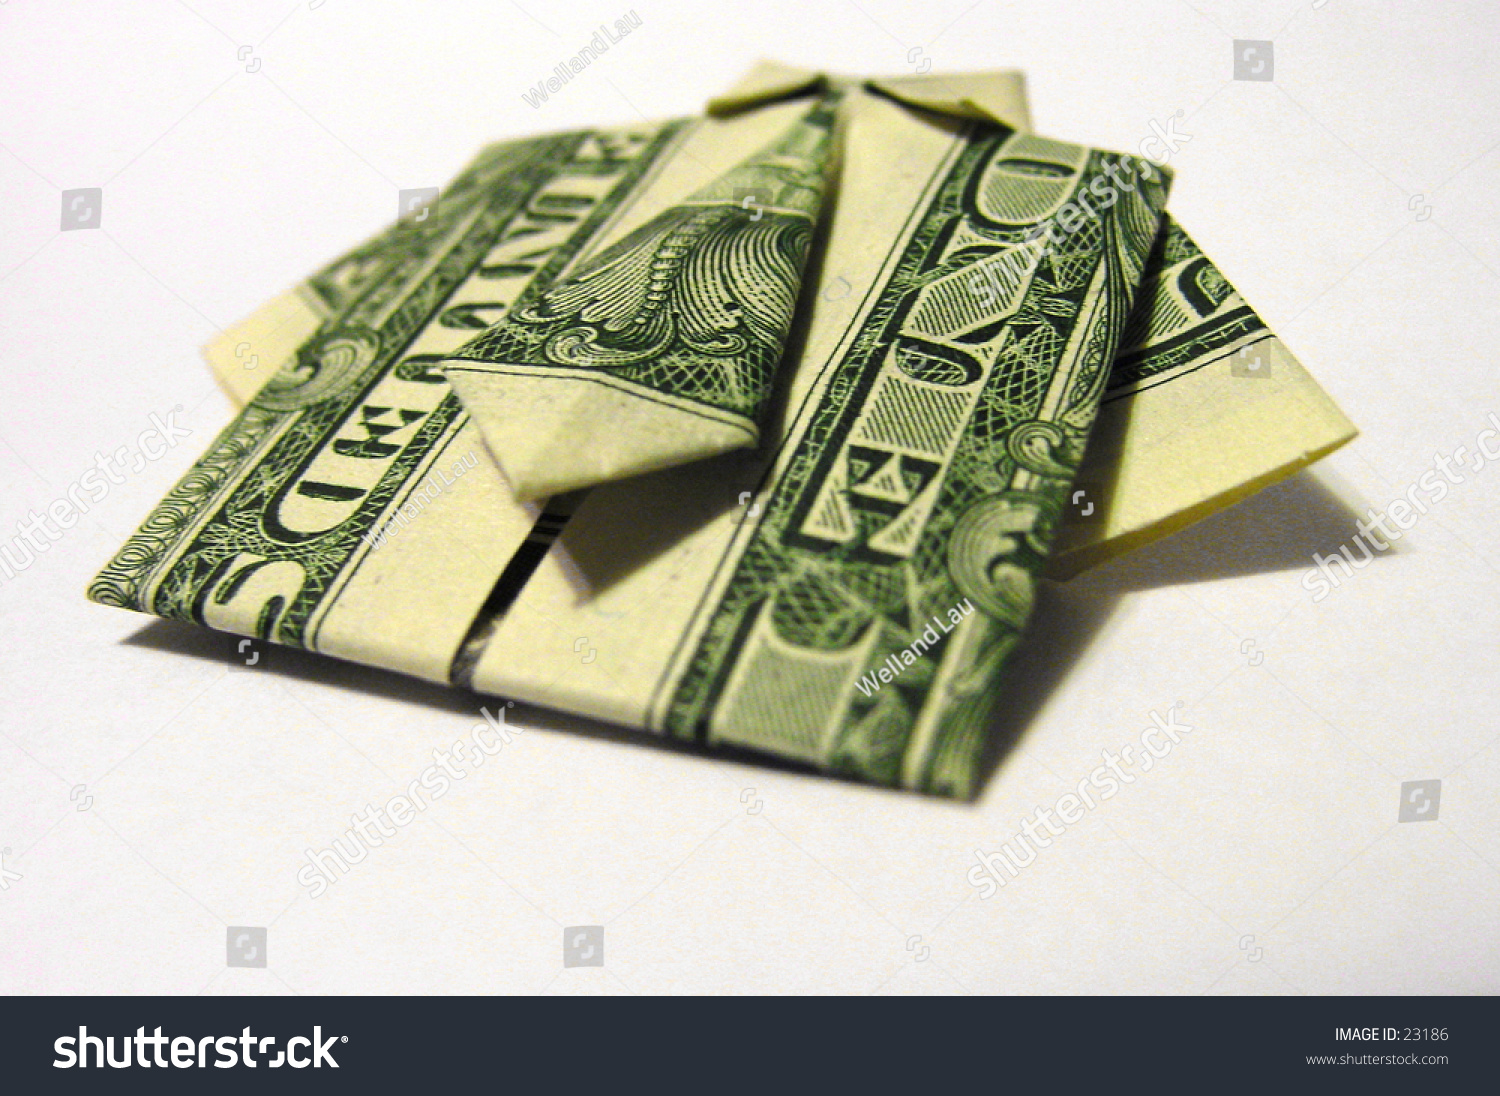 Origami Dollar Shirt - Our T Shirt - photo#23